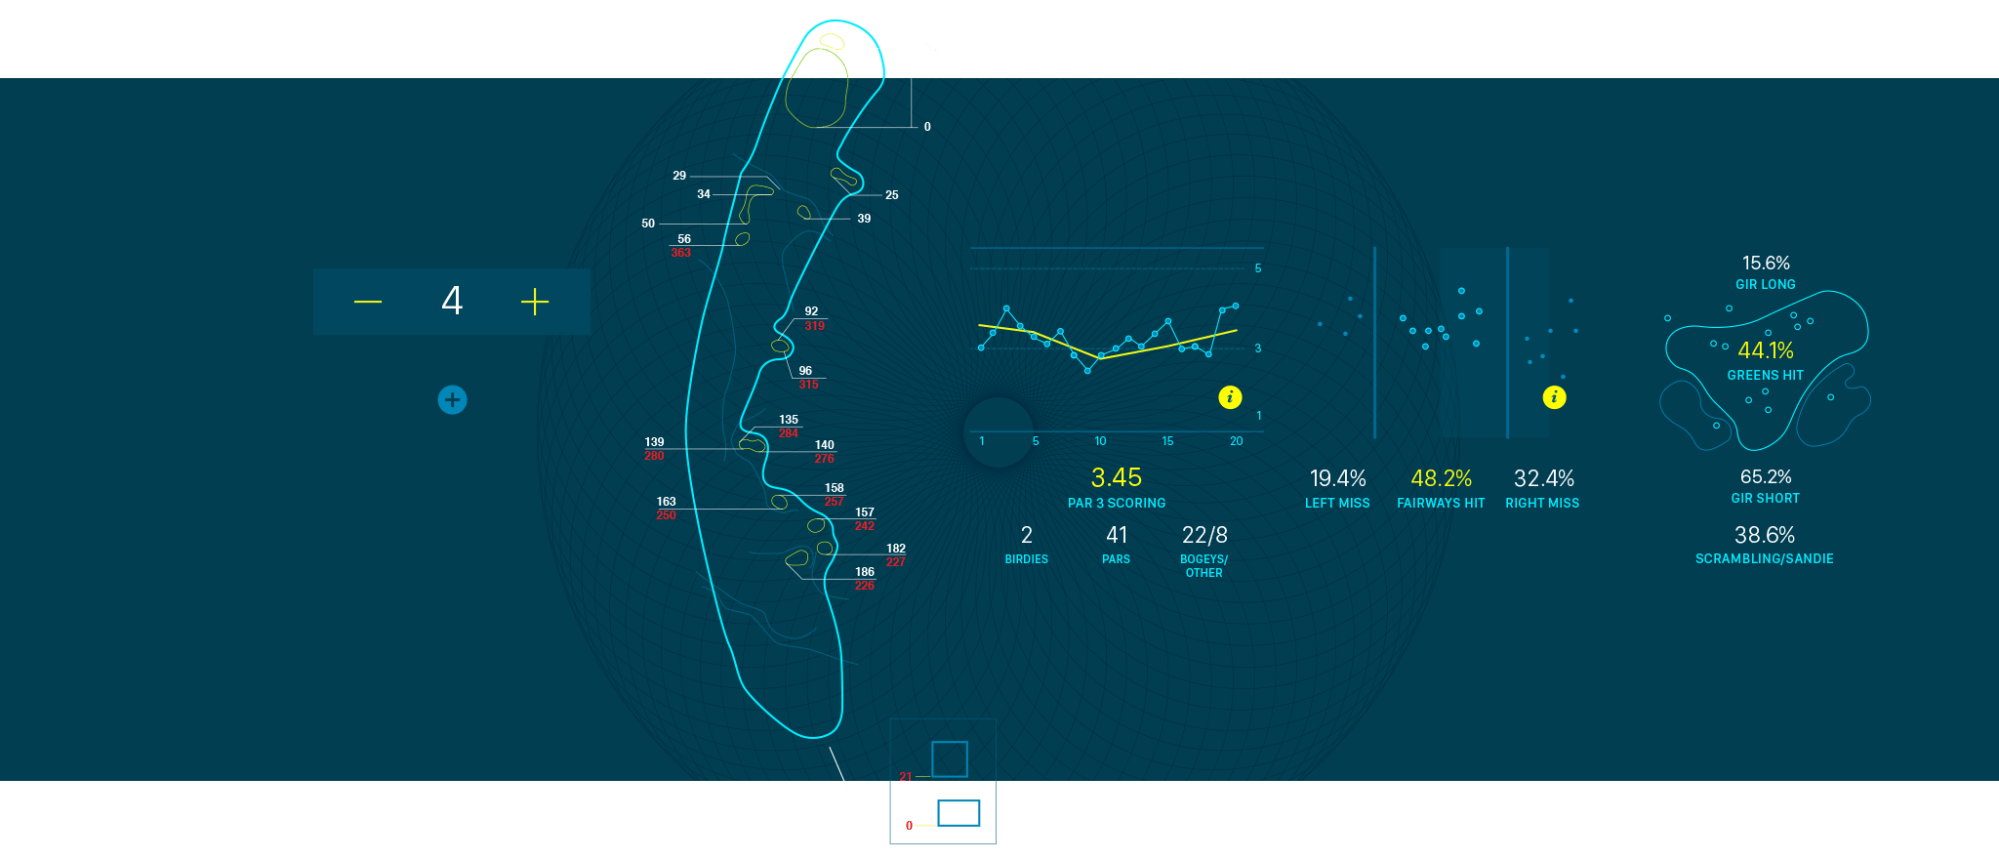 hight resolution of i ve been playing golf since i was 14 and have experienced every level of golf from not being able to hit the ball to being able to shape the ball flight